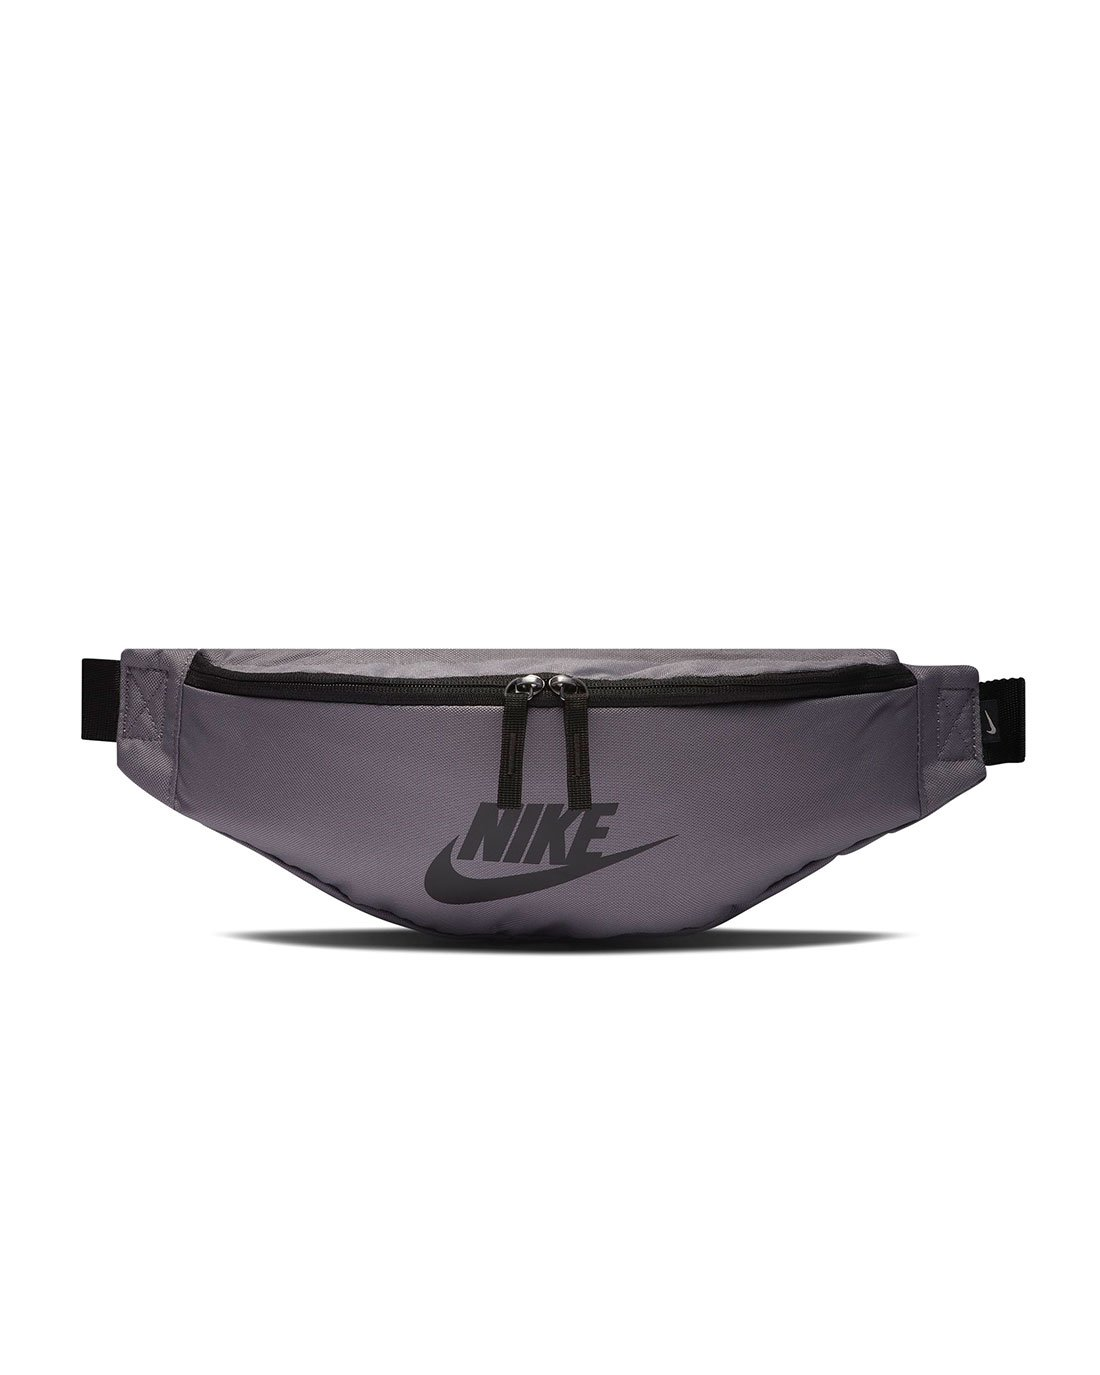 NIKE Heritage Hip Pack Bag, Gunsmoke/Black/Black, Misc